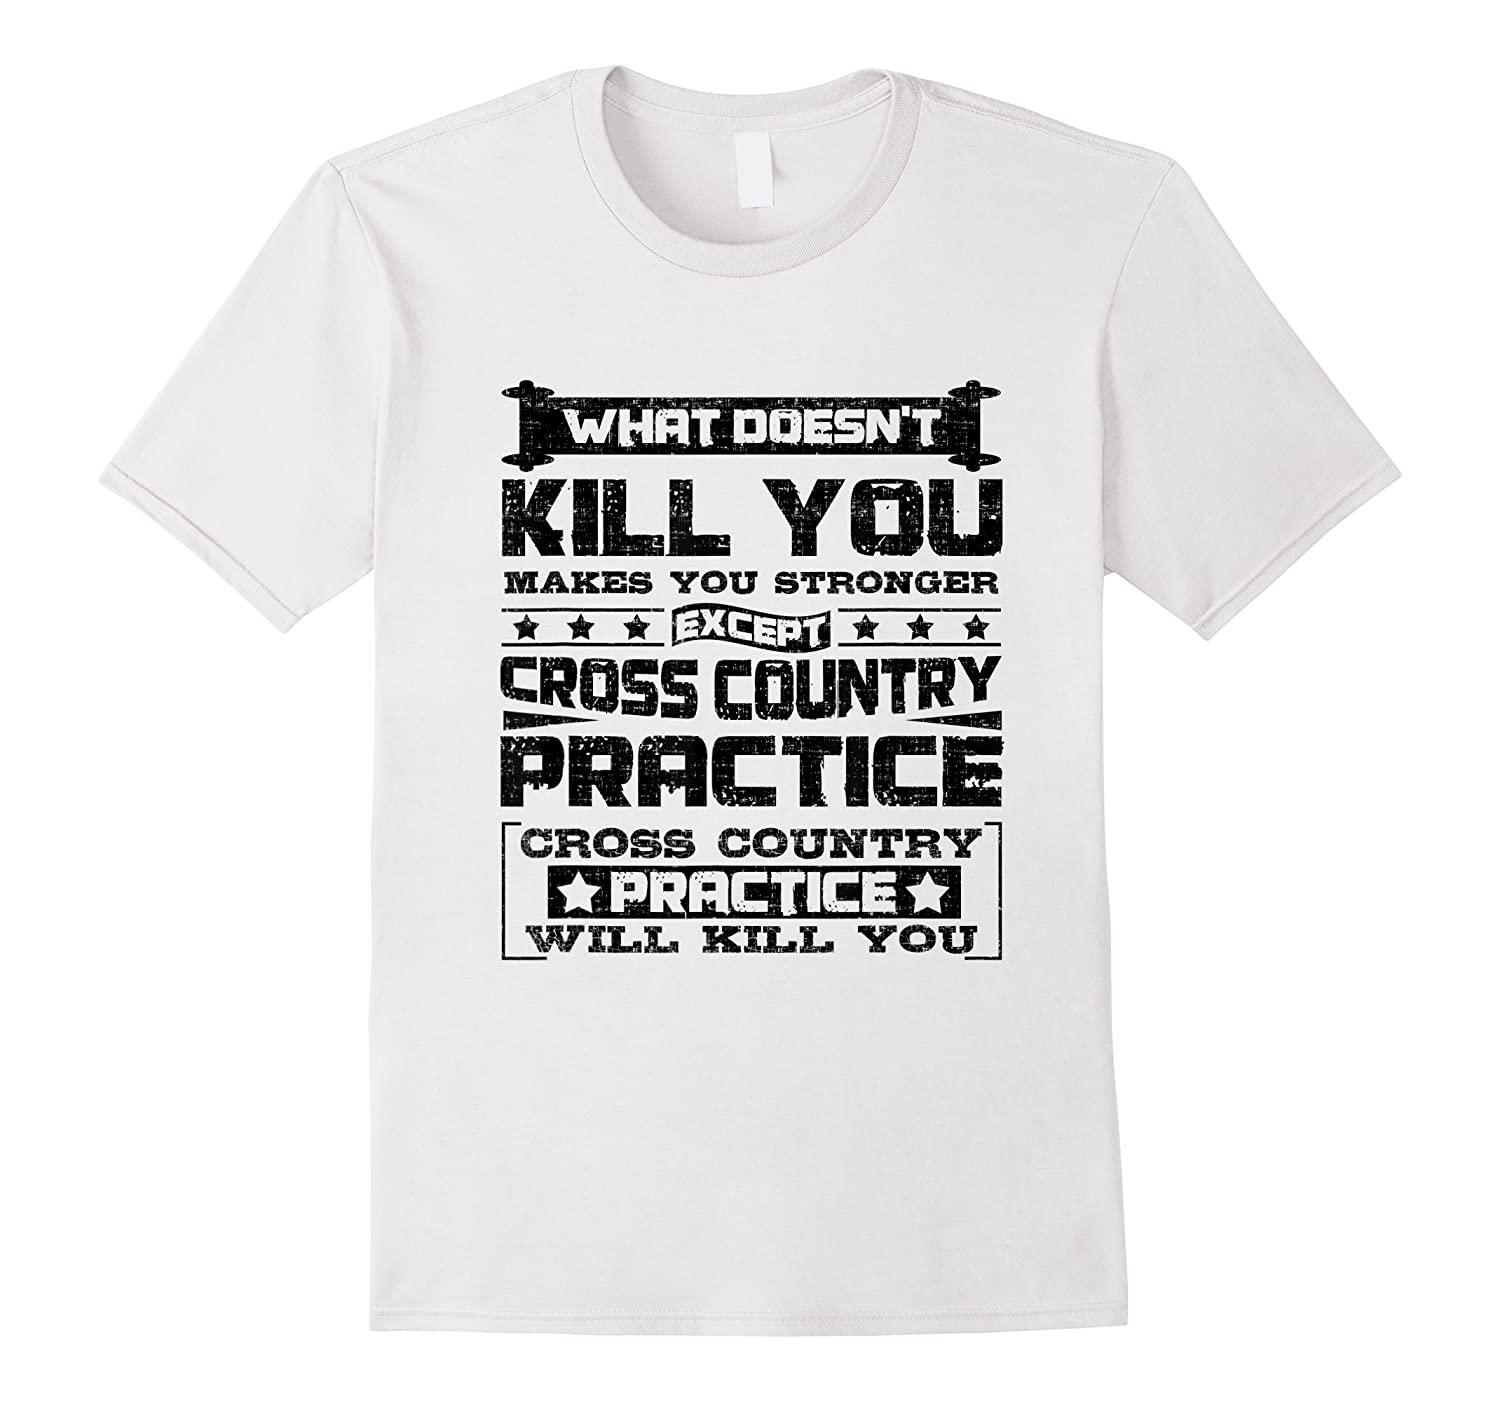 Cross Country Cross Country Practice Will Kill You Shirts